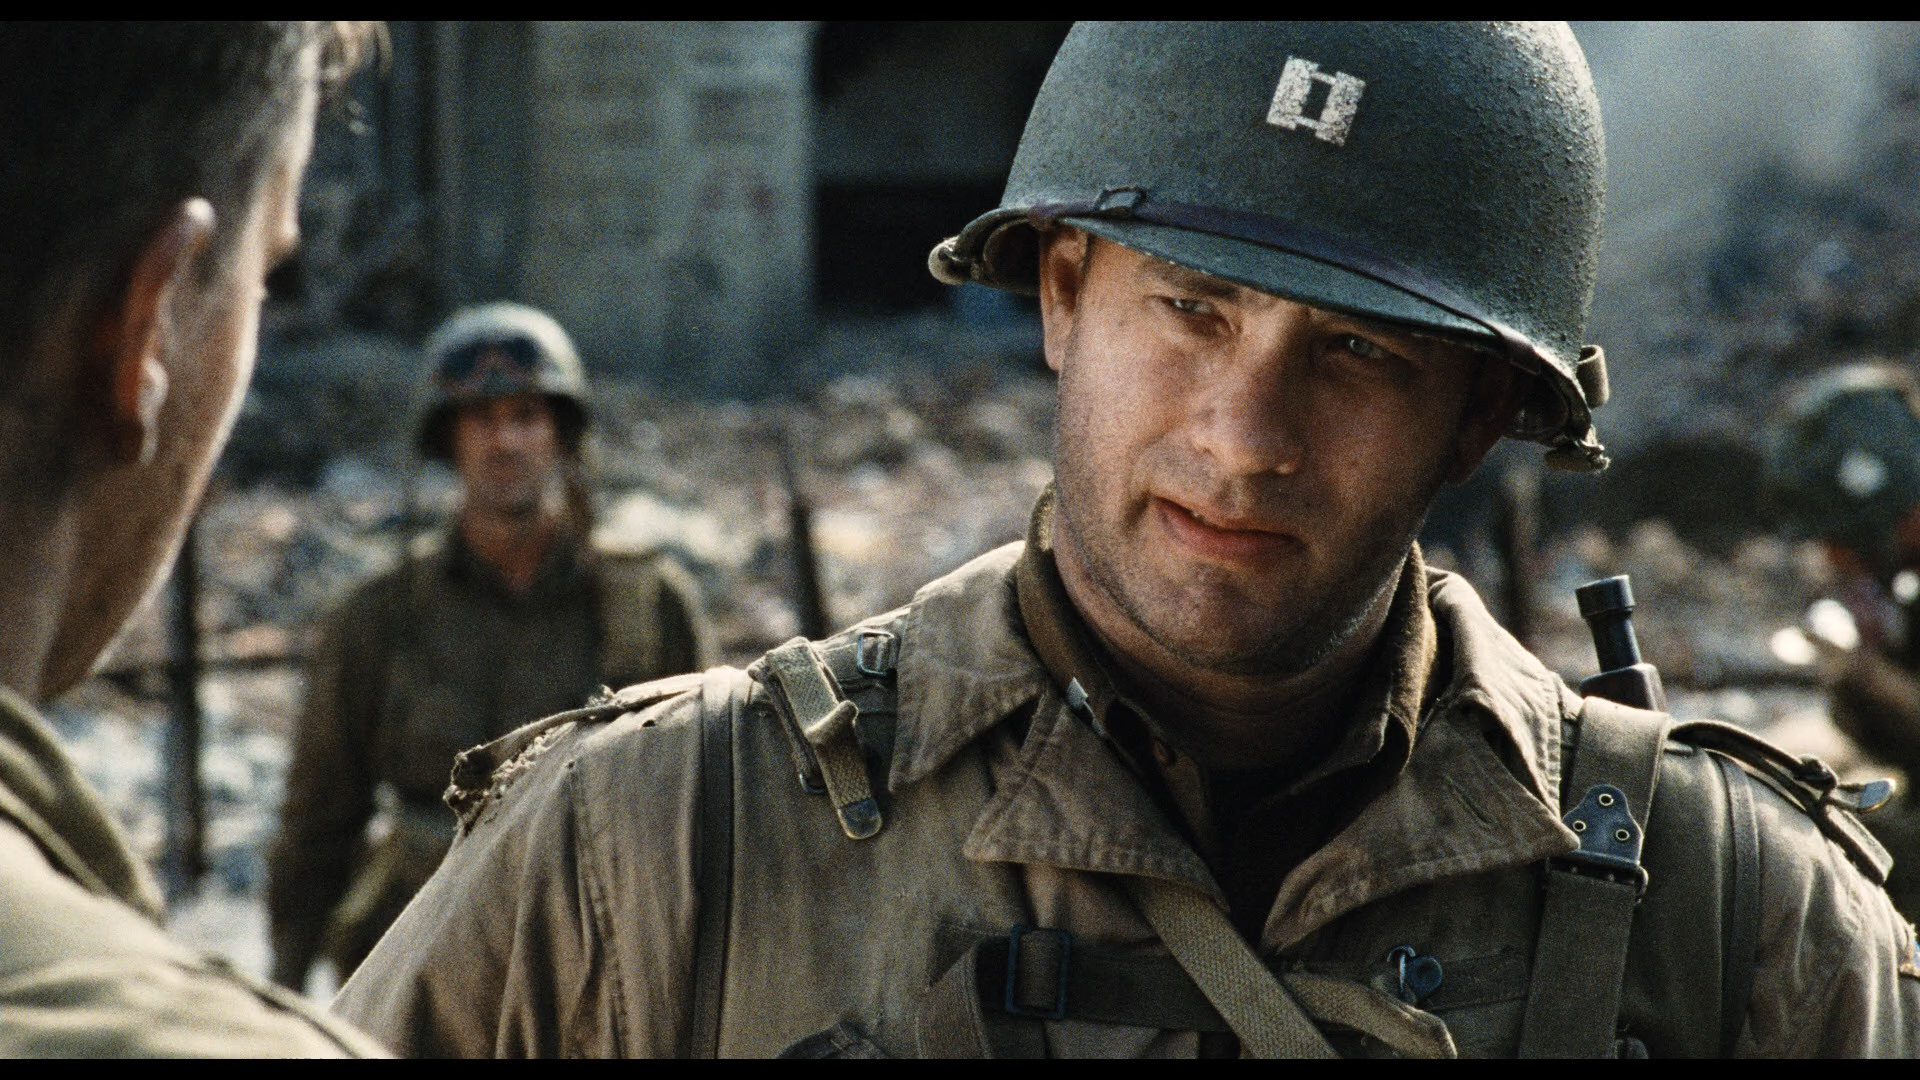 SAVING_PRIVATE_RYAN_drama_action_tom_hanks_military__h_1920x1080